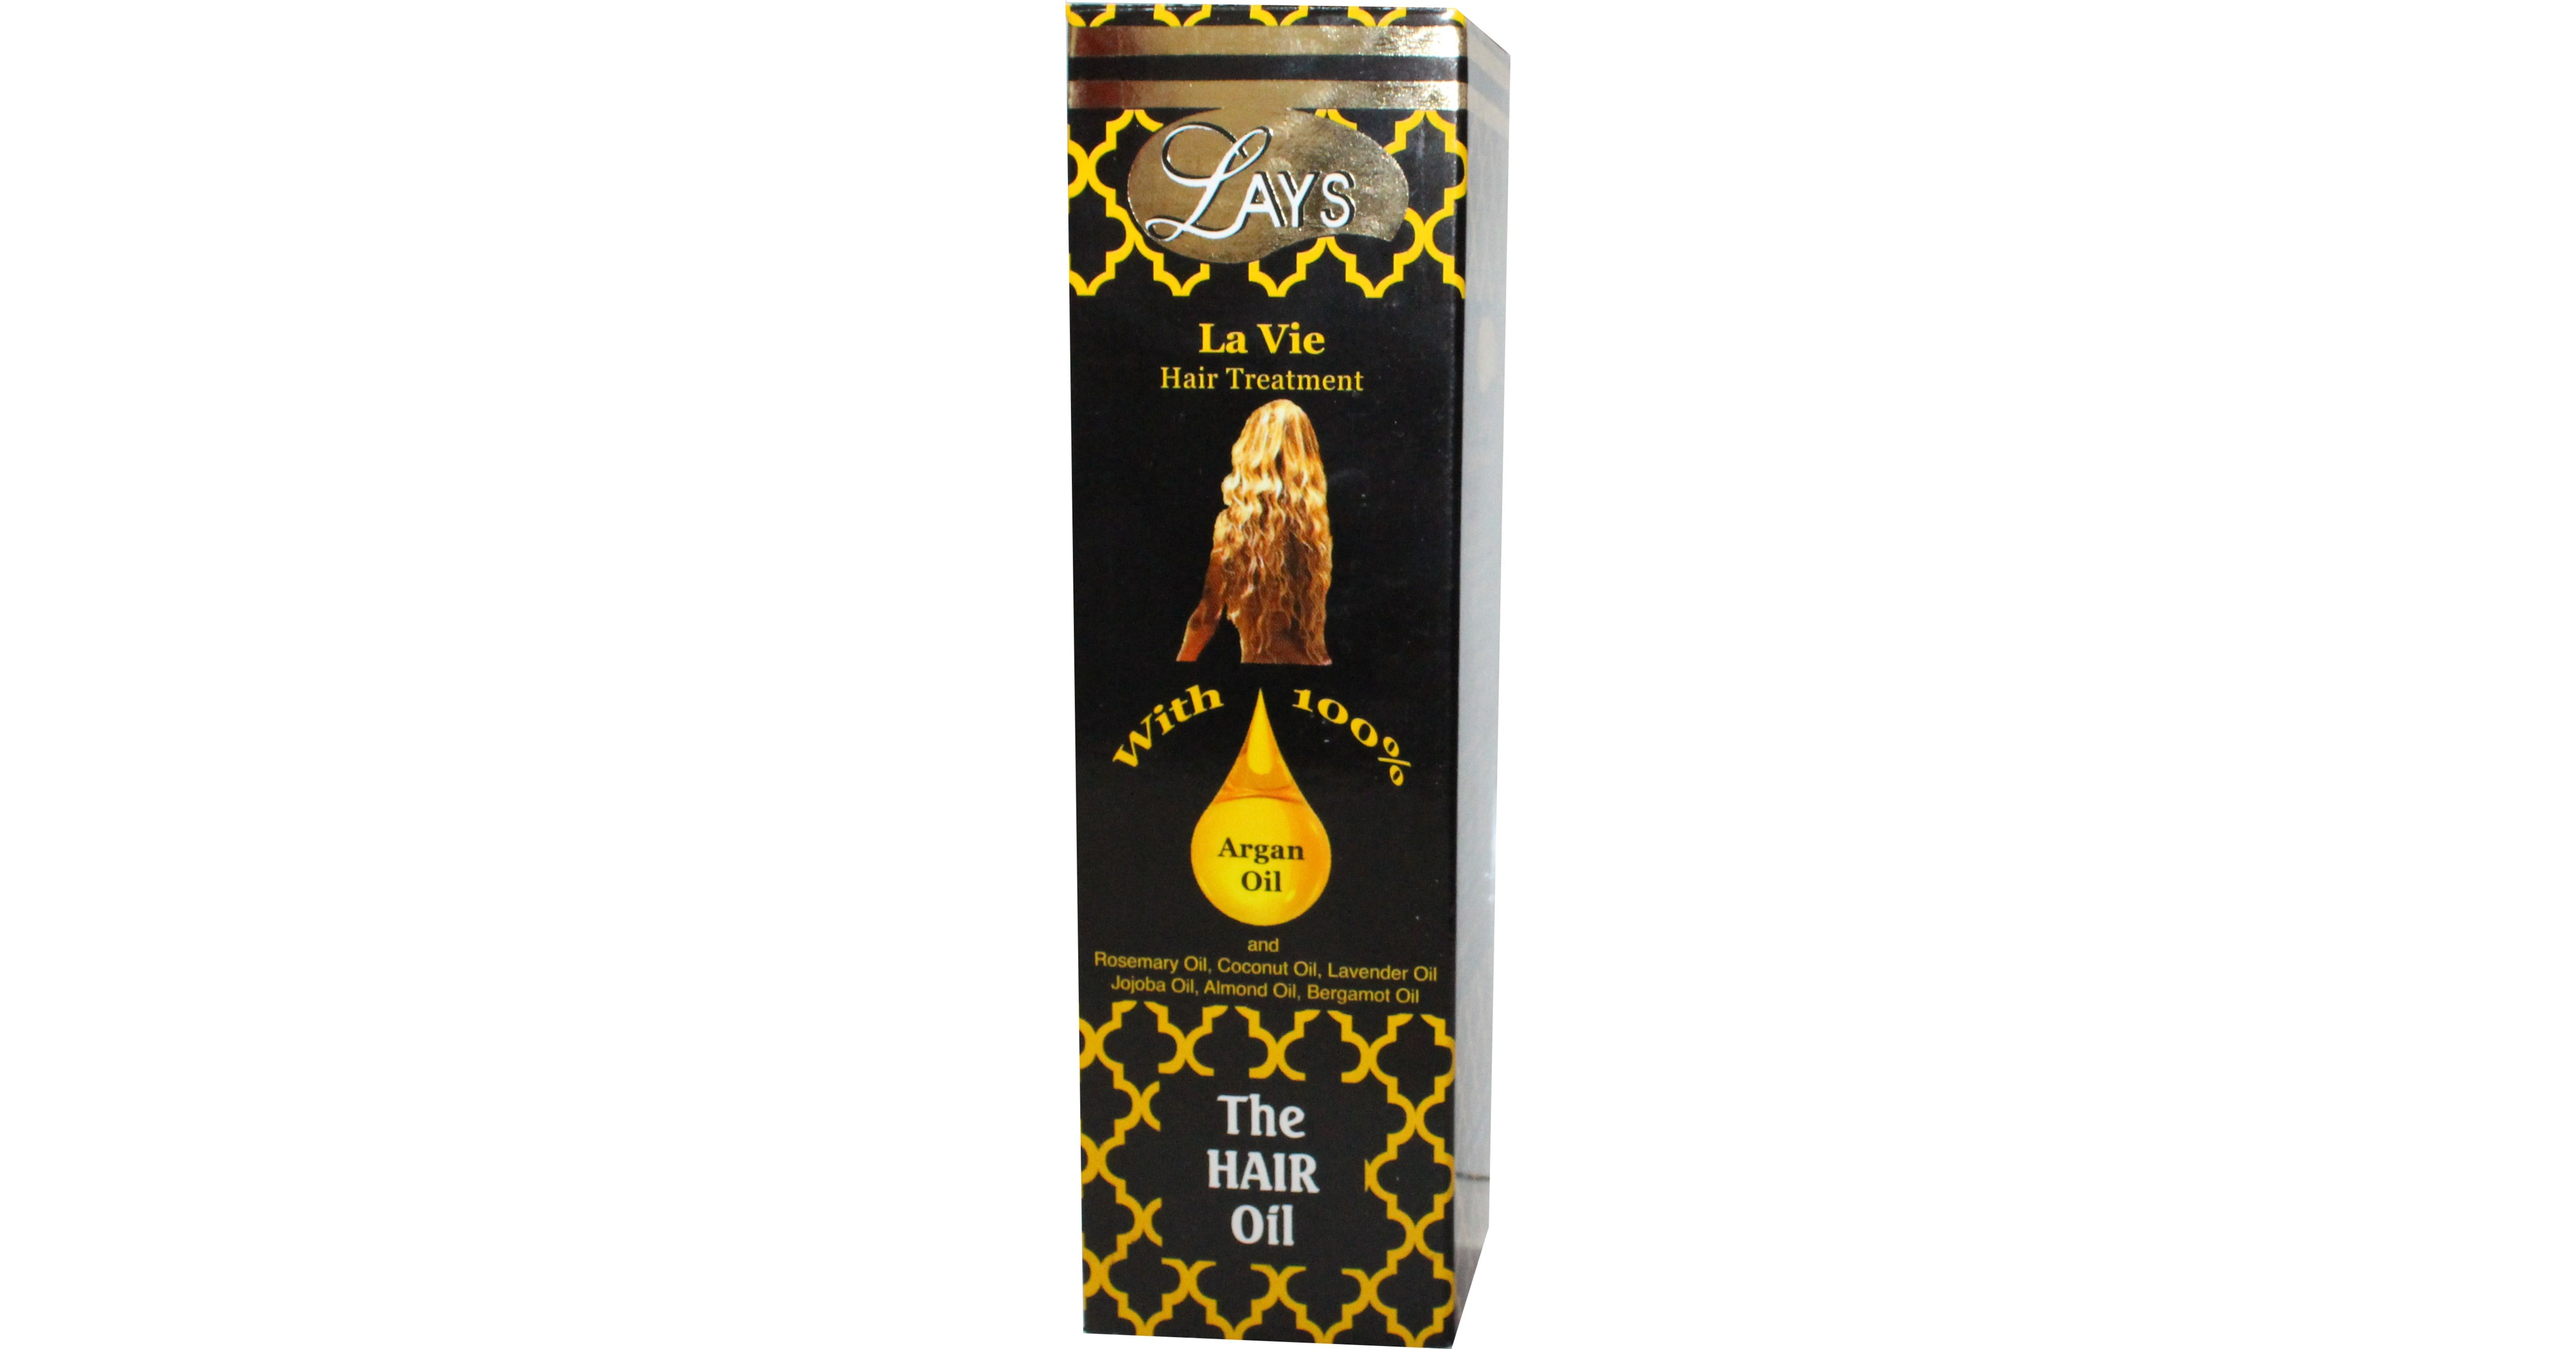 Marshalls Traditional Health Care features its Lays Hair Oil for National Hair Loss Awareness Month